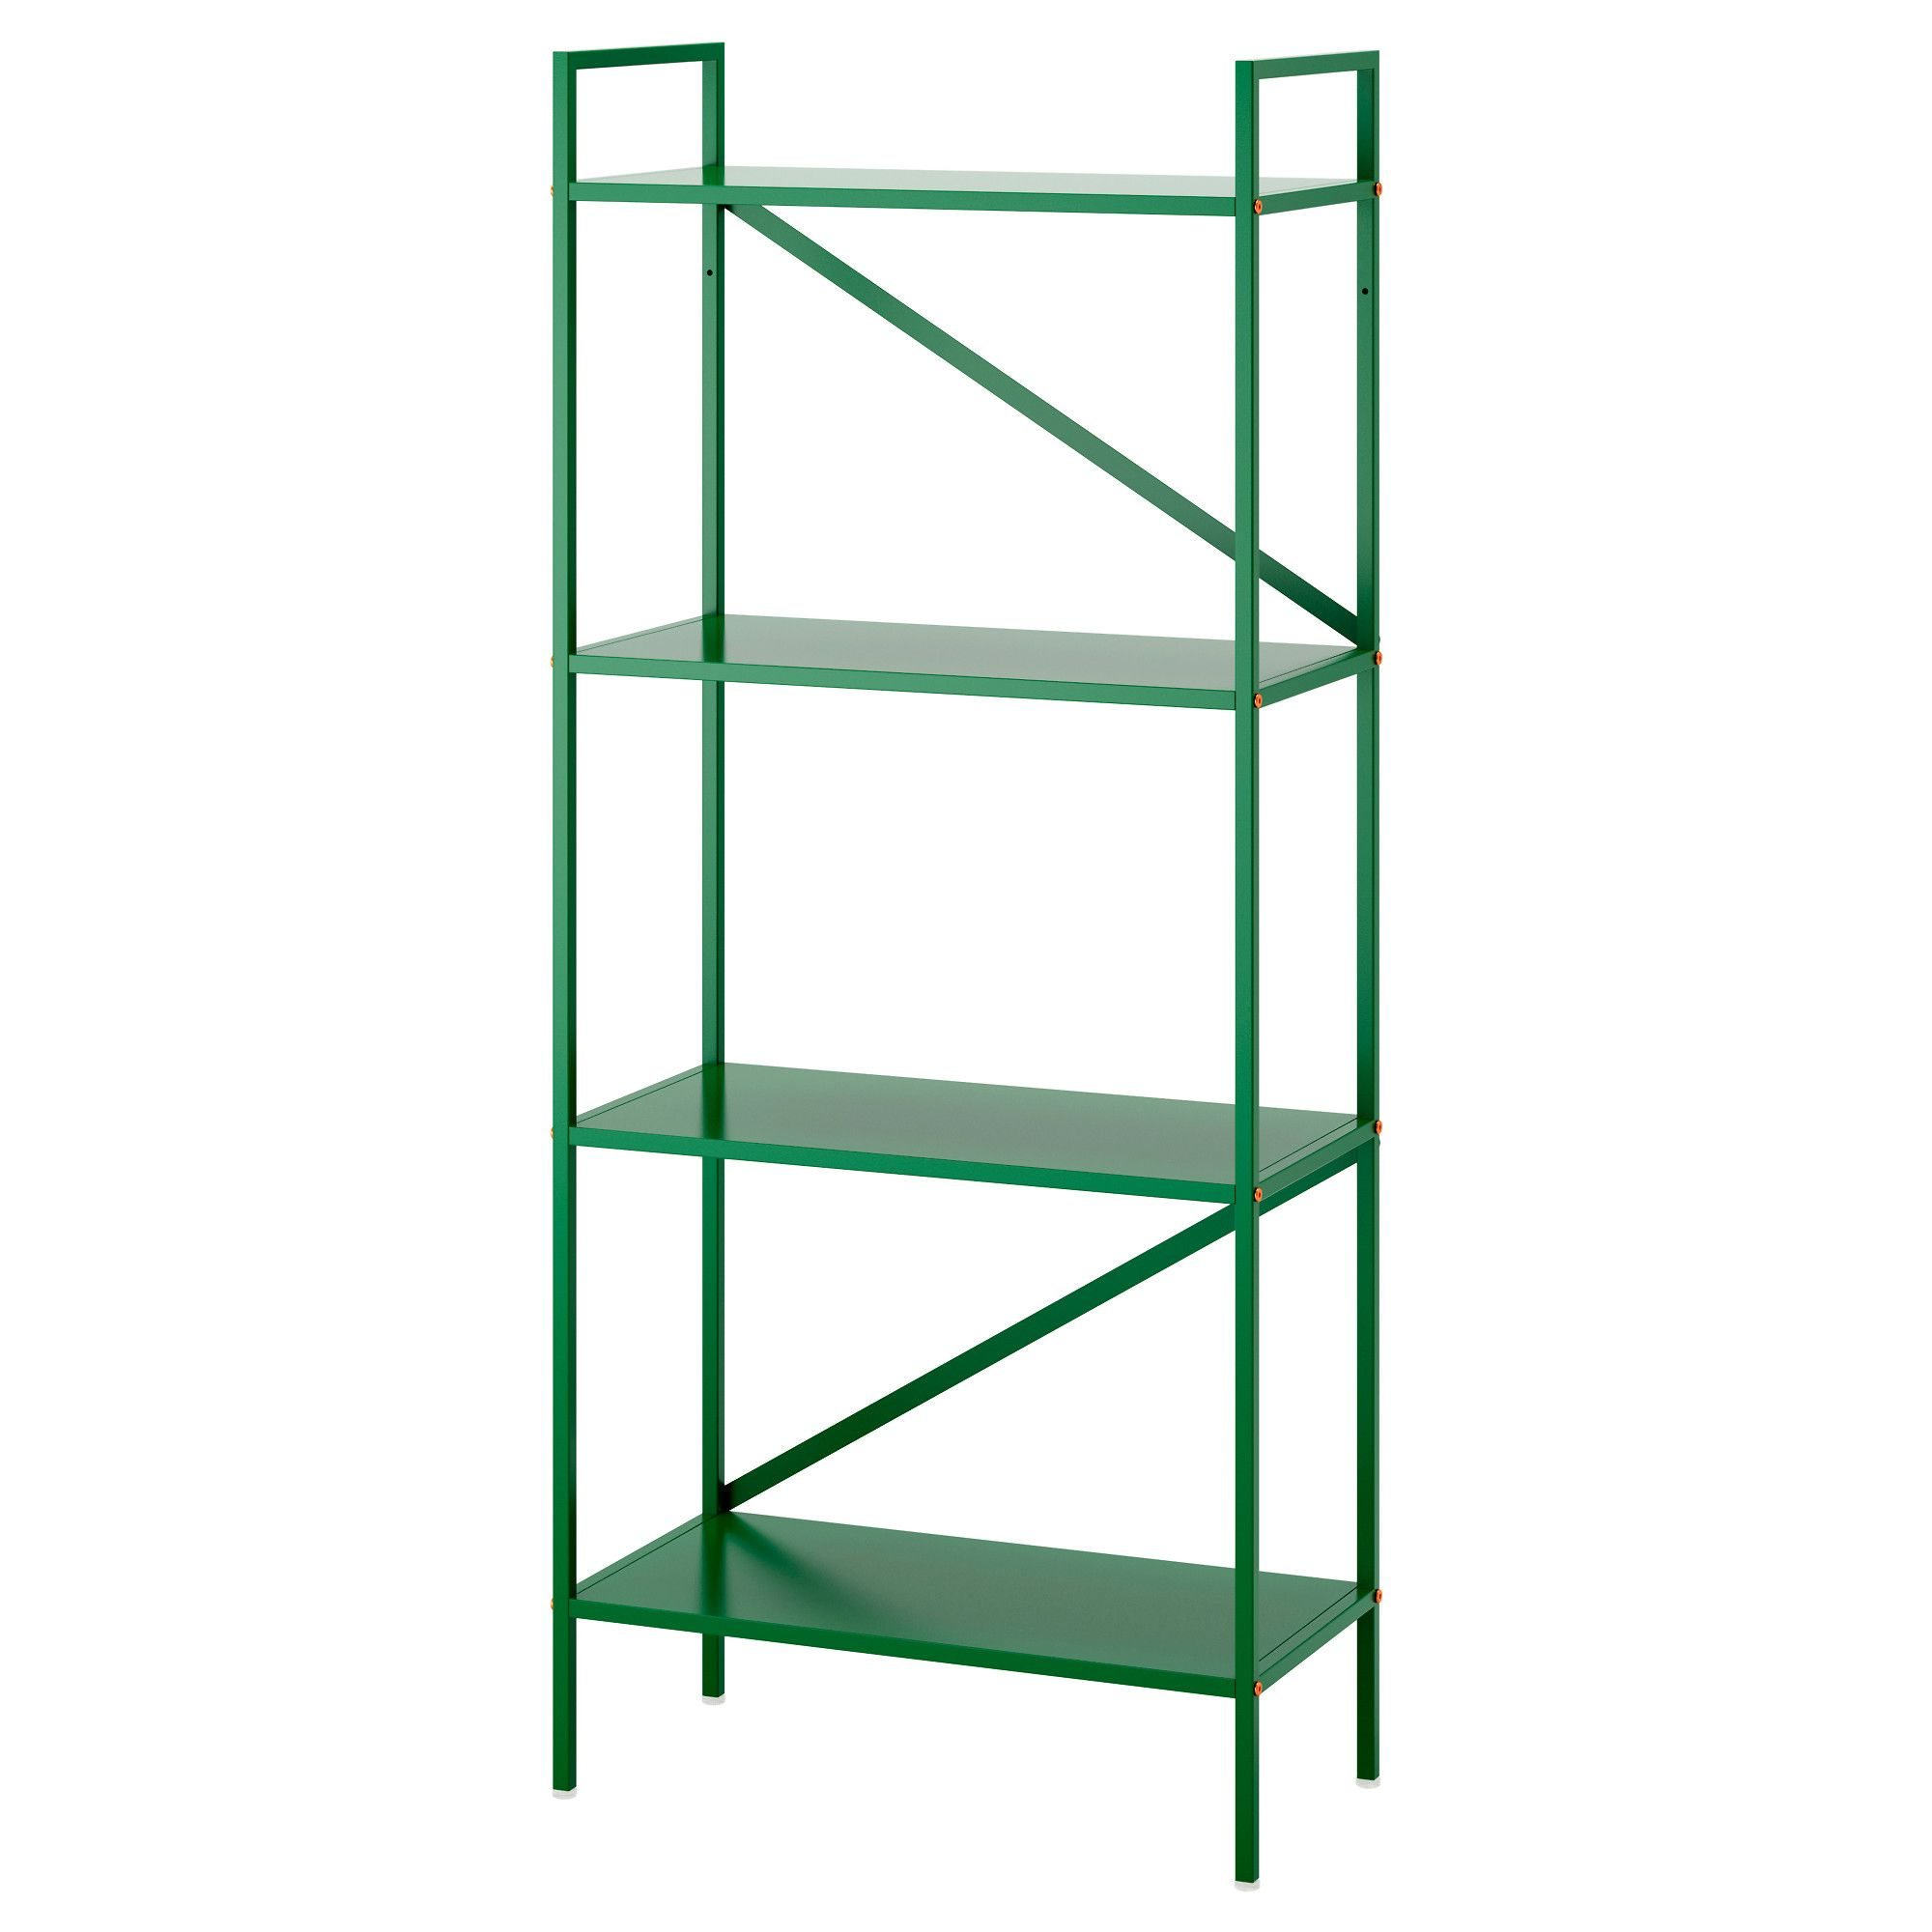 Ikea  Draget, Shelf Unit, Green, , The Design Makes